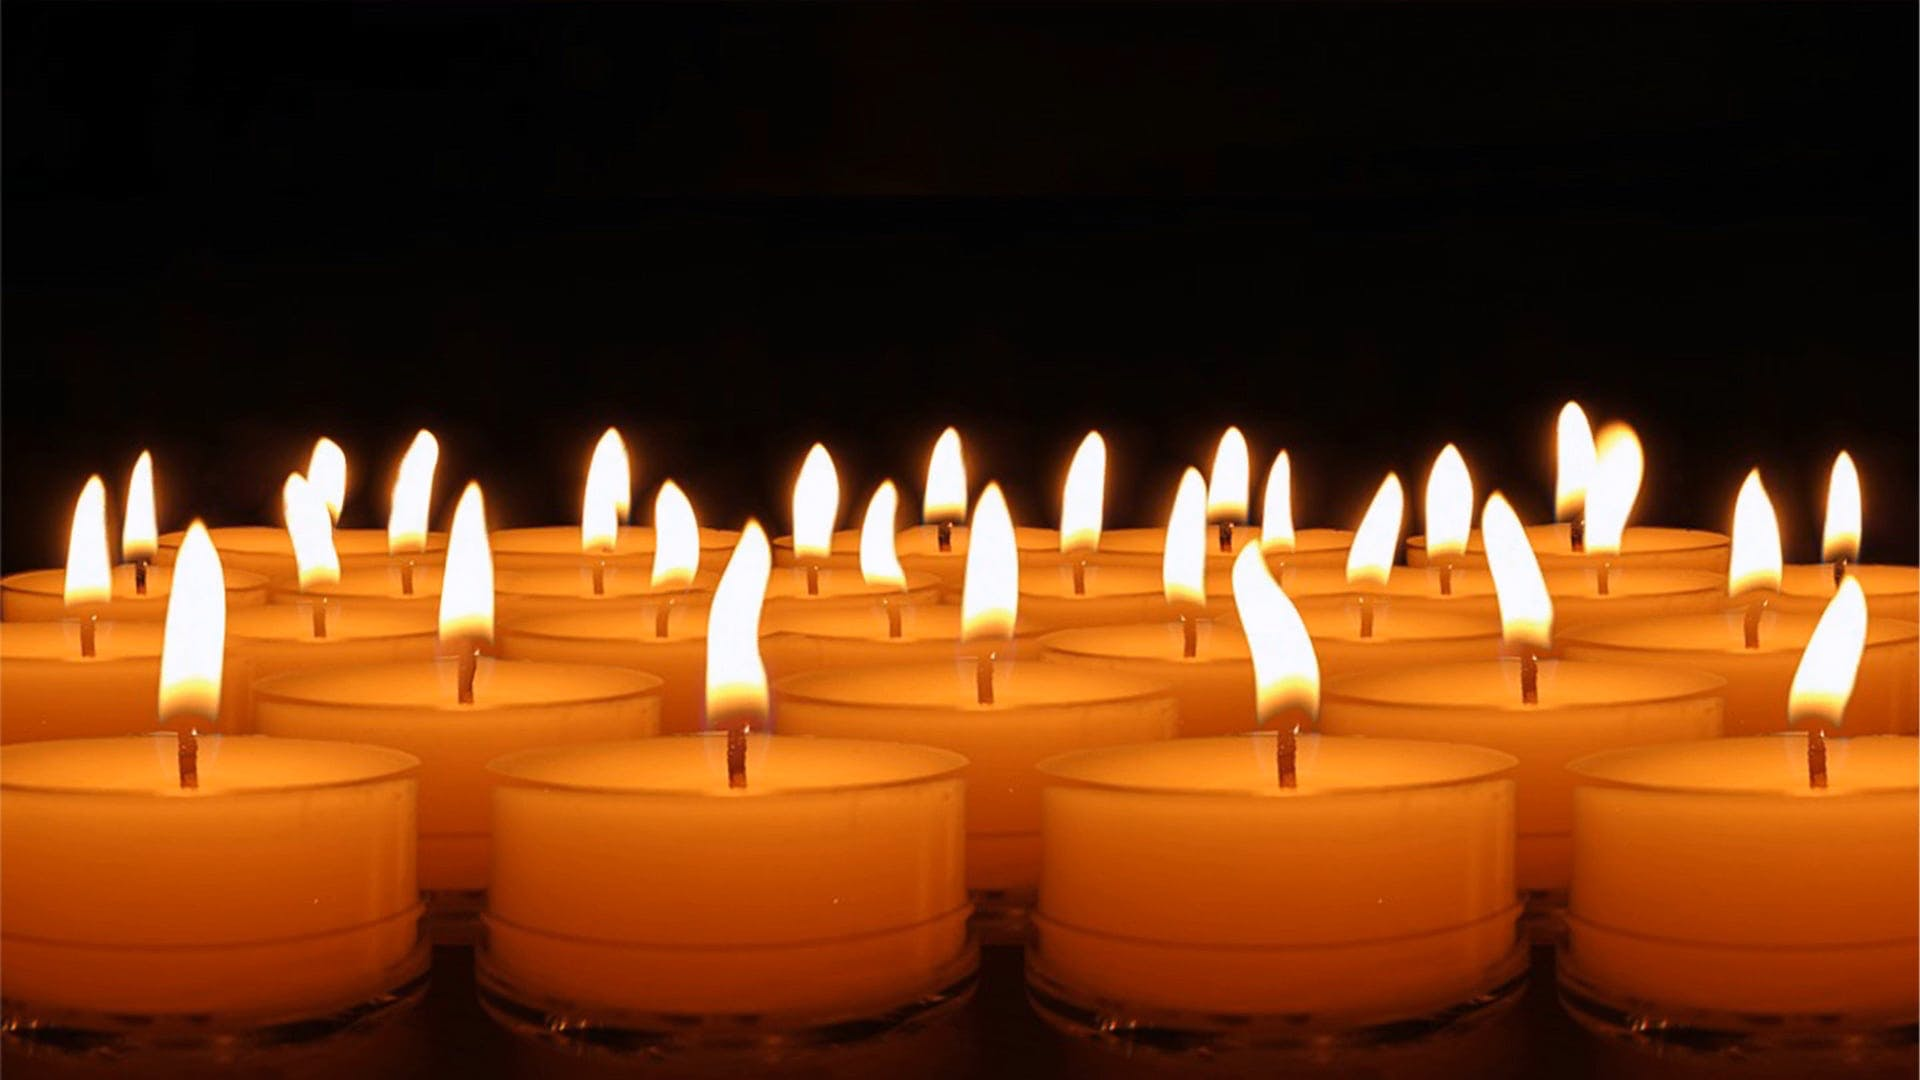 Video Of Lighted Candles